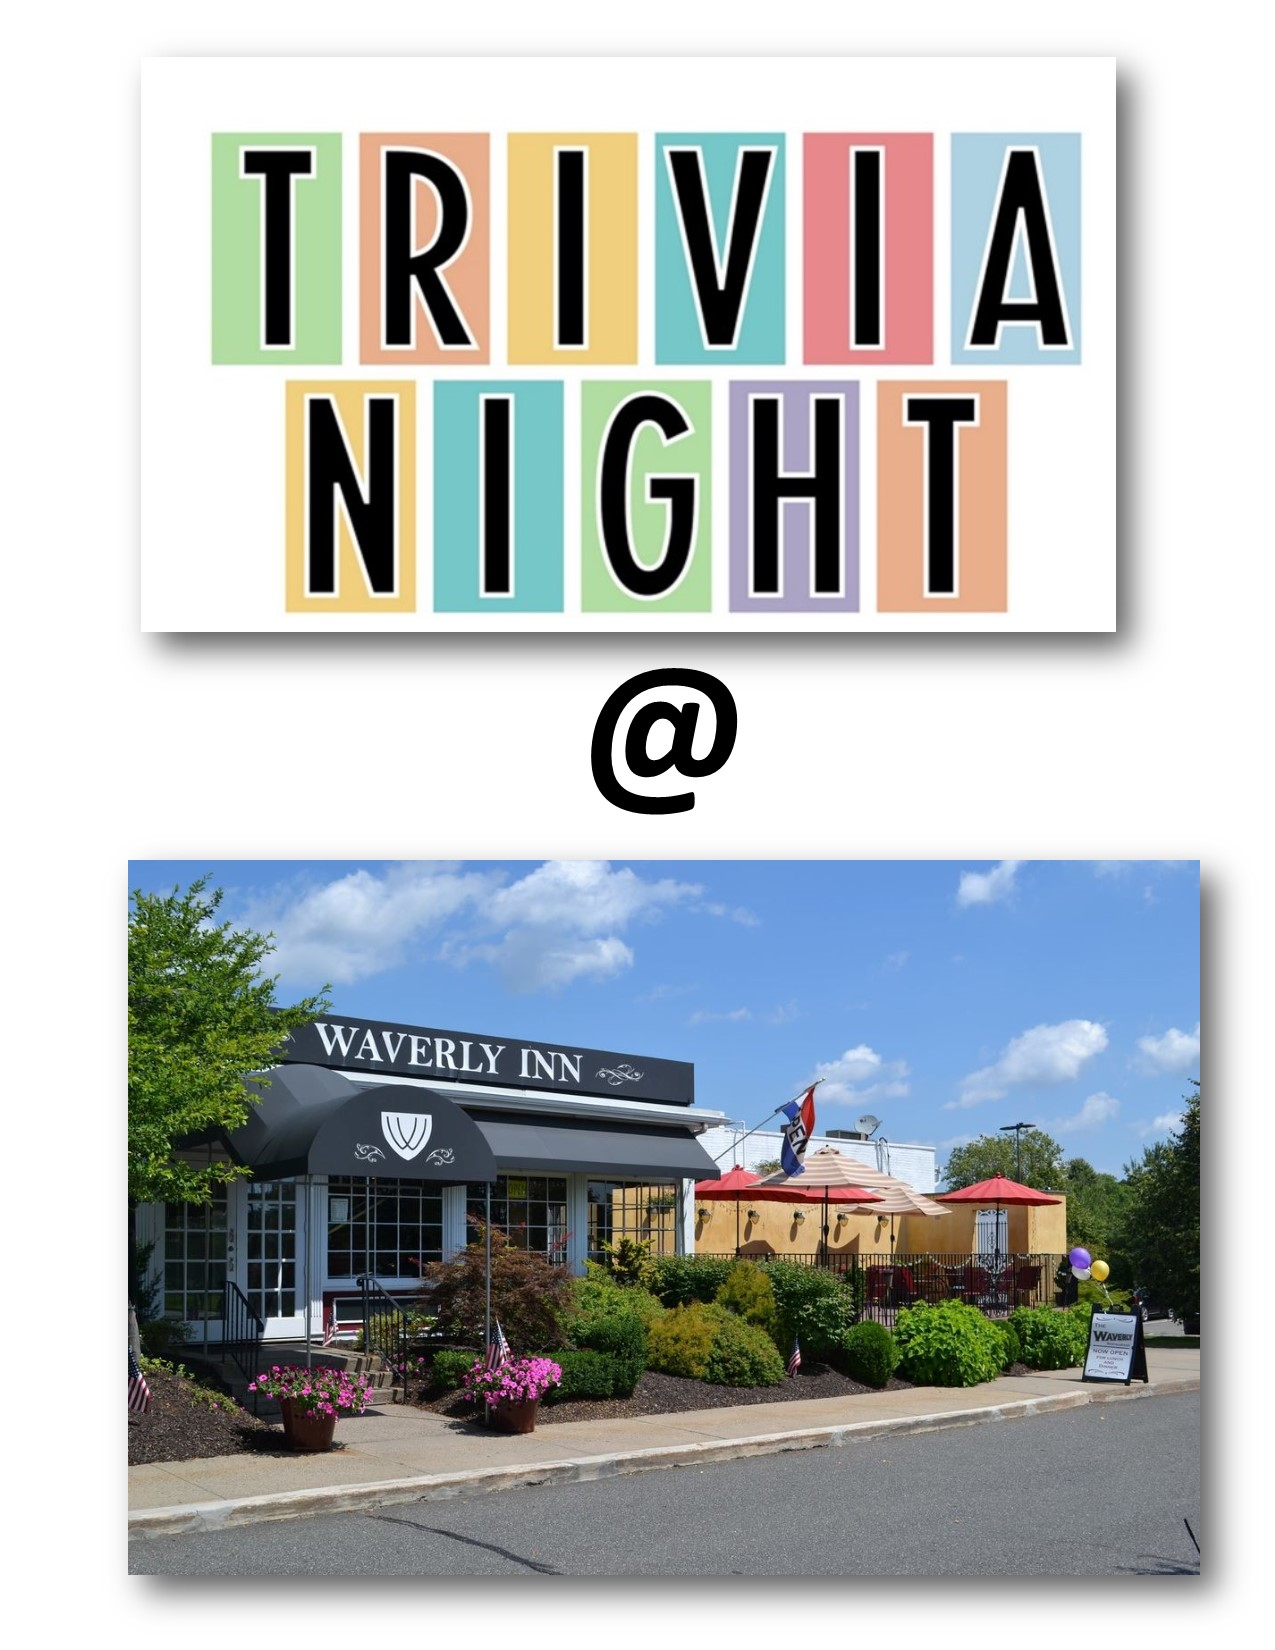 Trivia Night @ The Waverly Inn